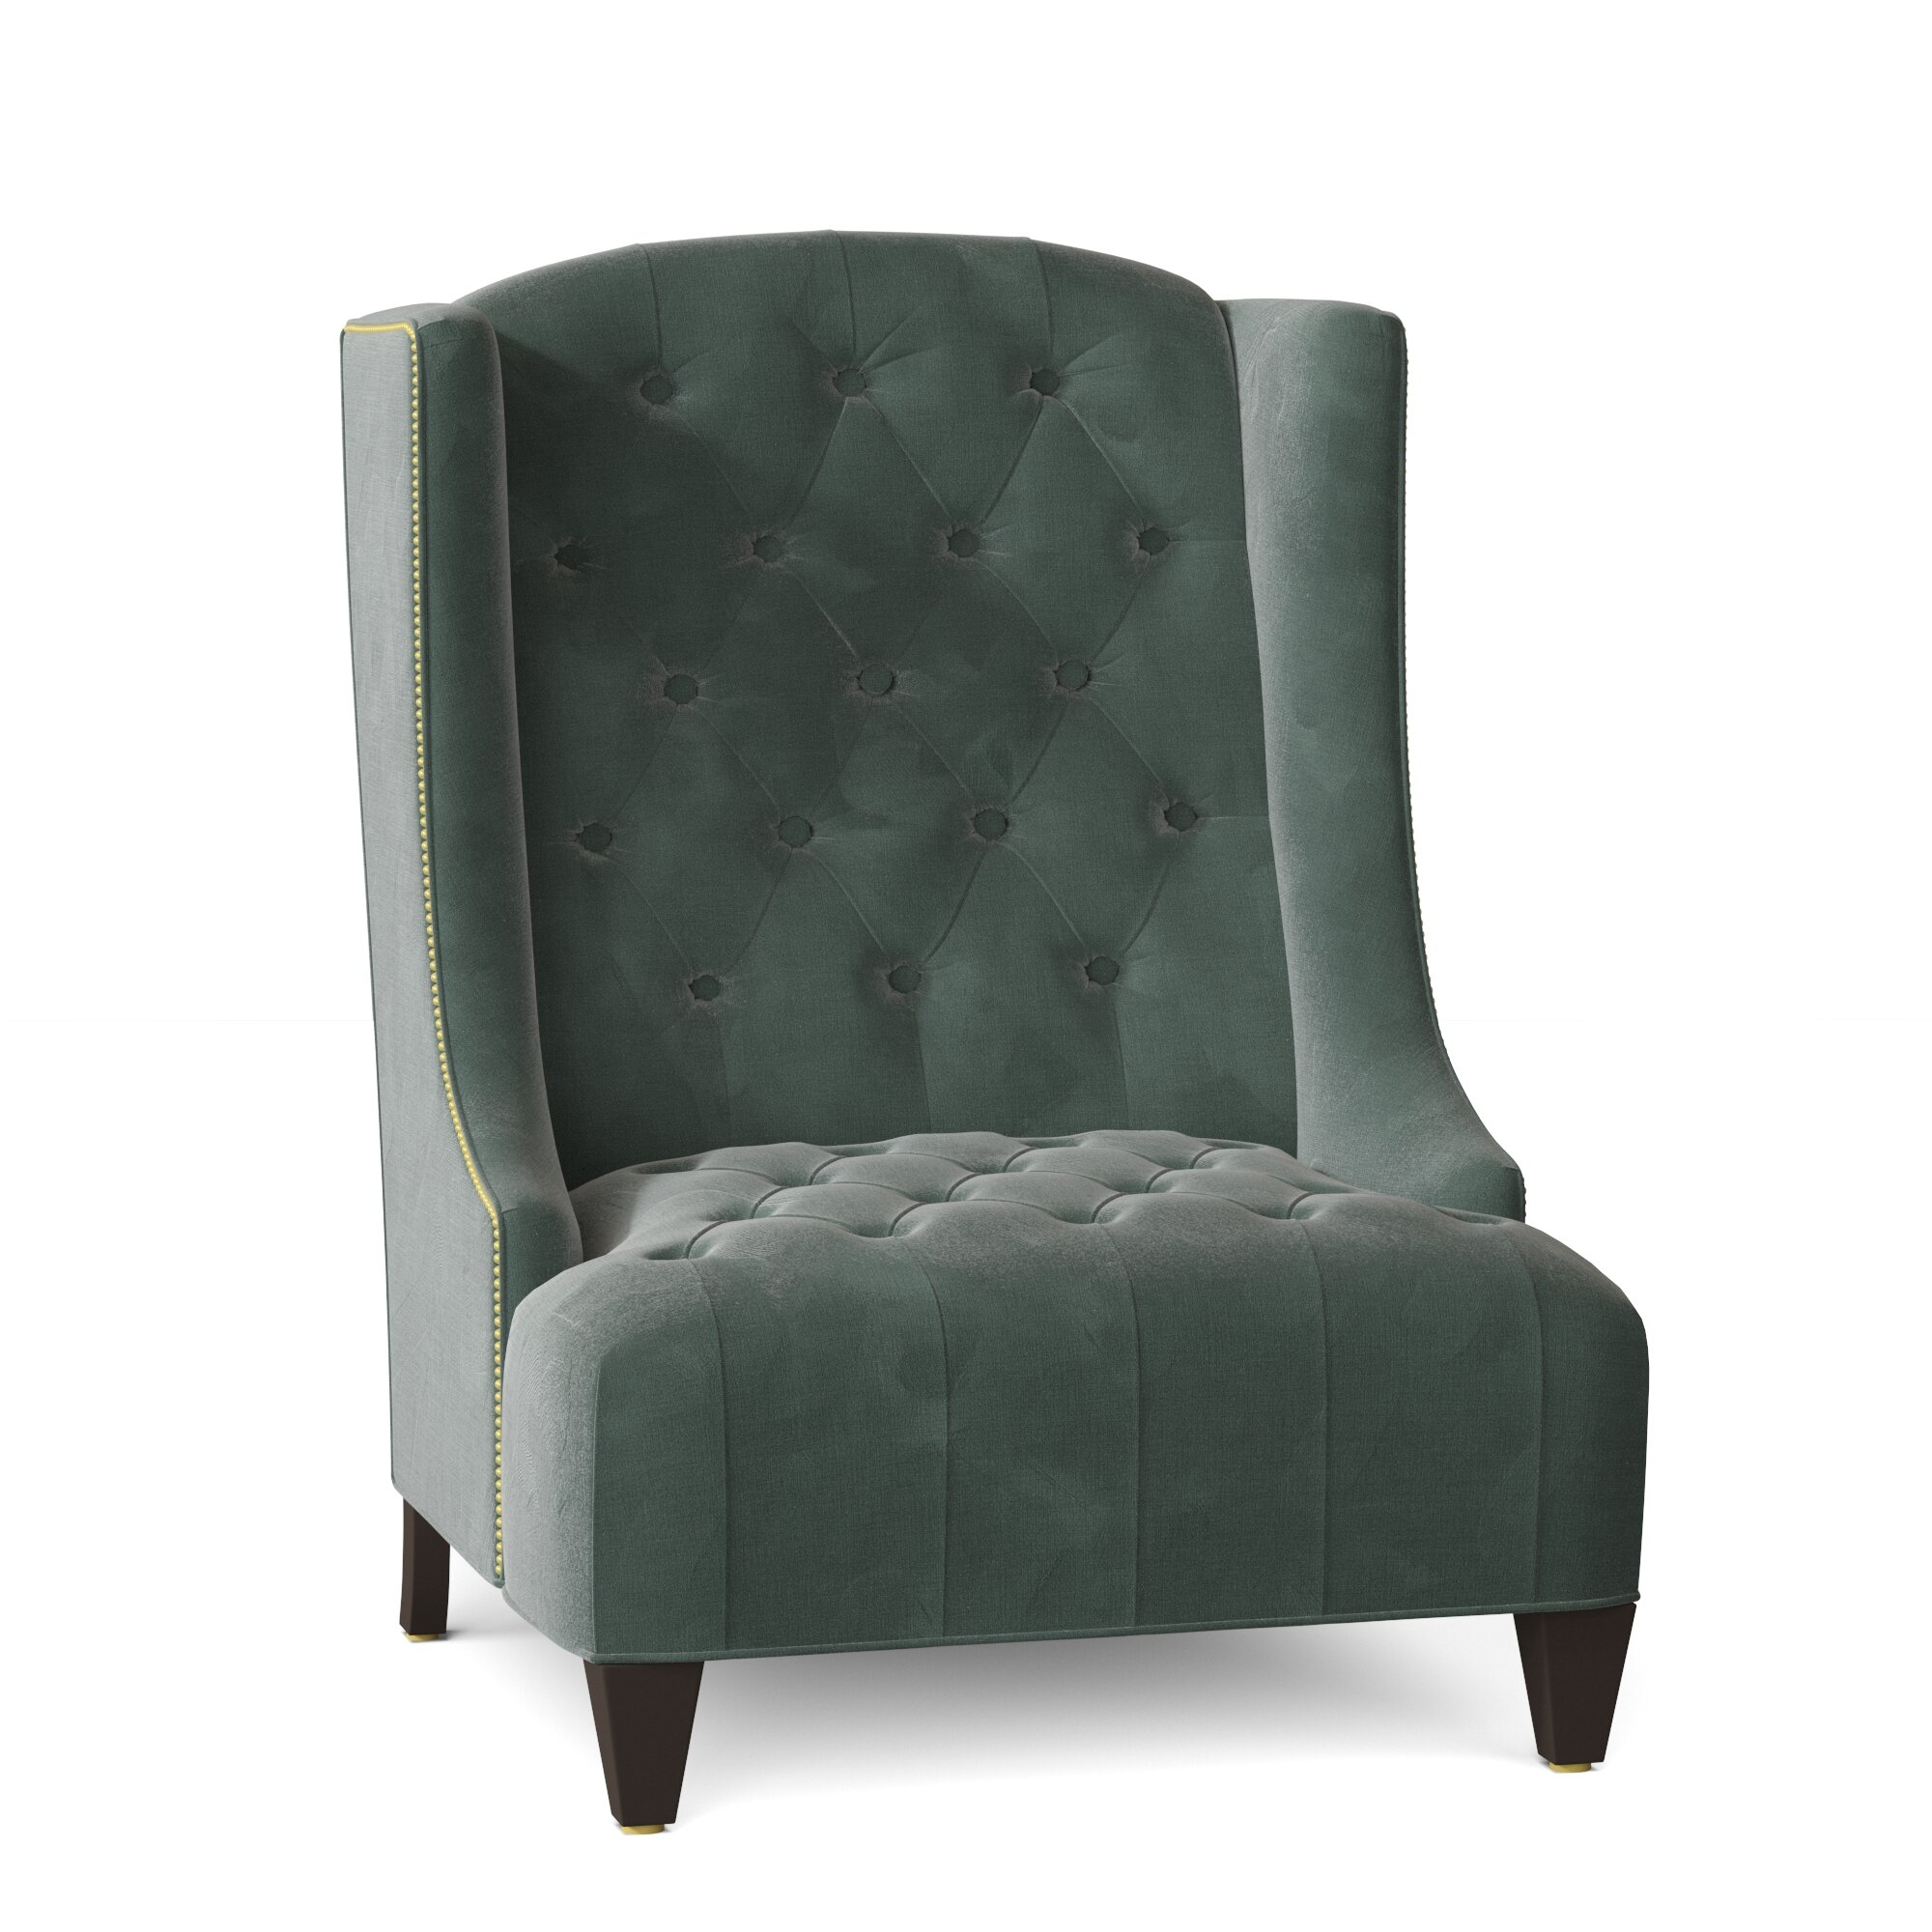 Wingback Accent Chairs You'Ll Love In 2021 | Wayfair (View 11 of 15)